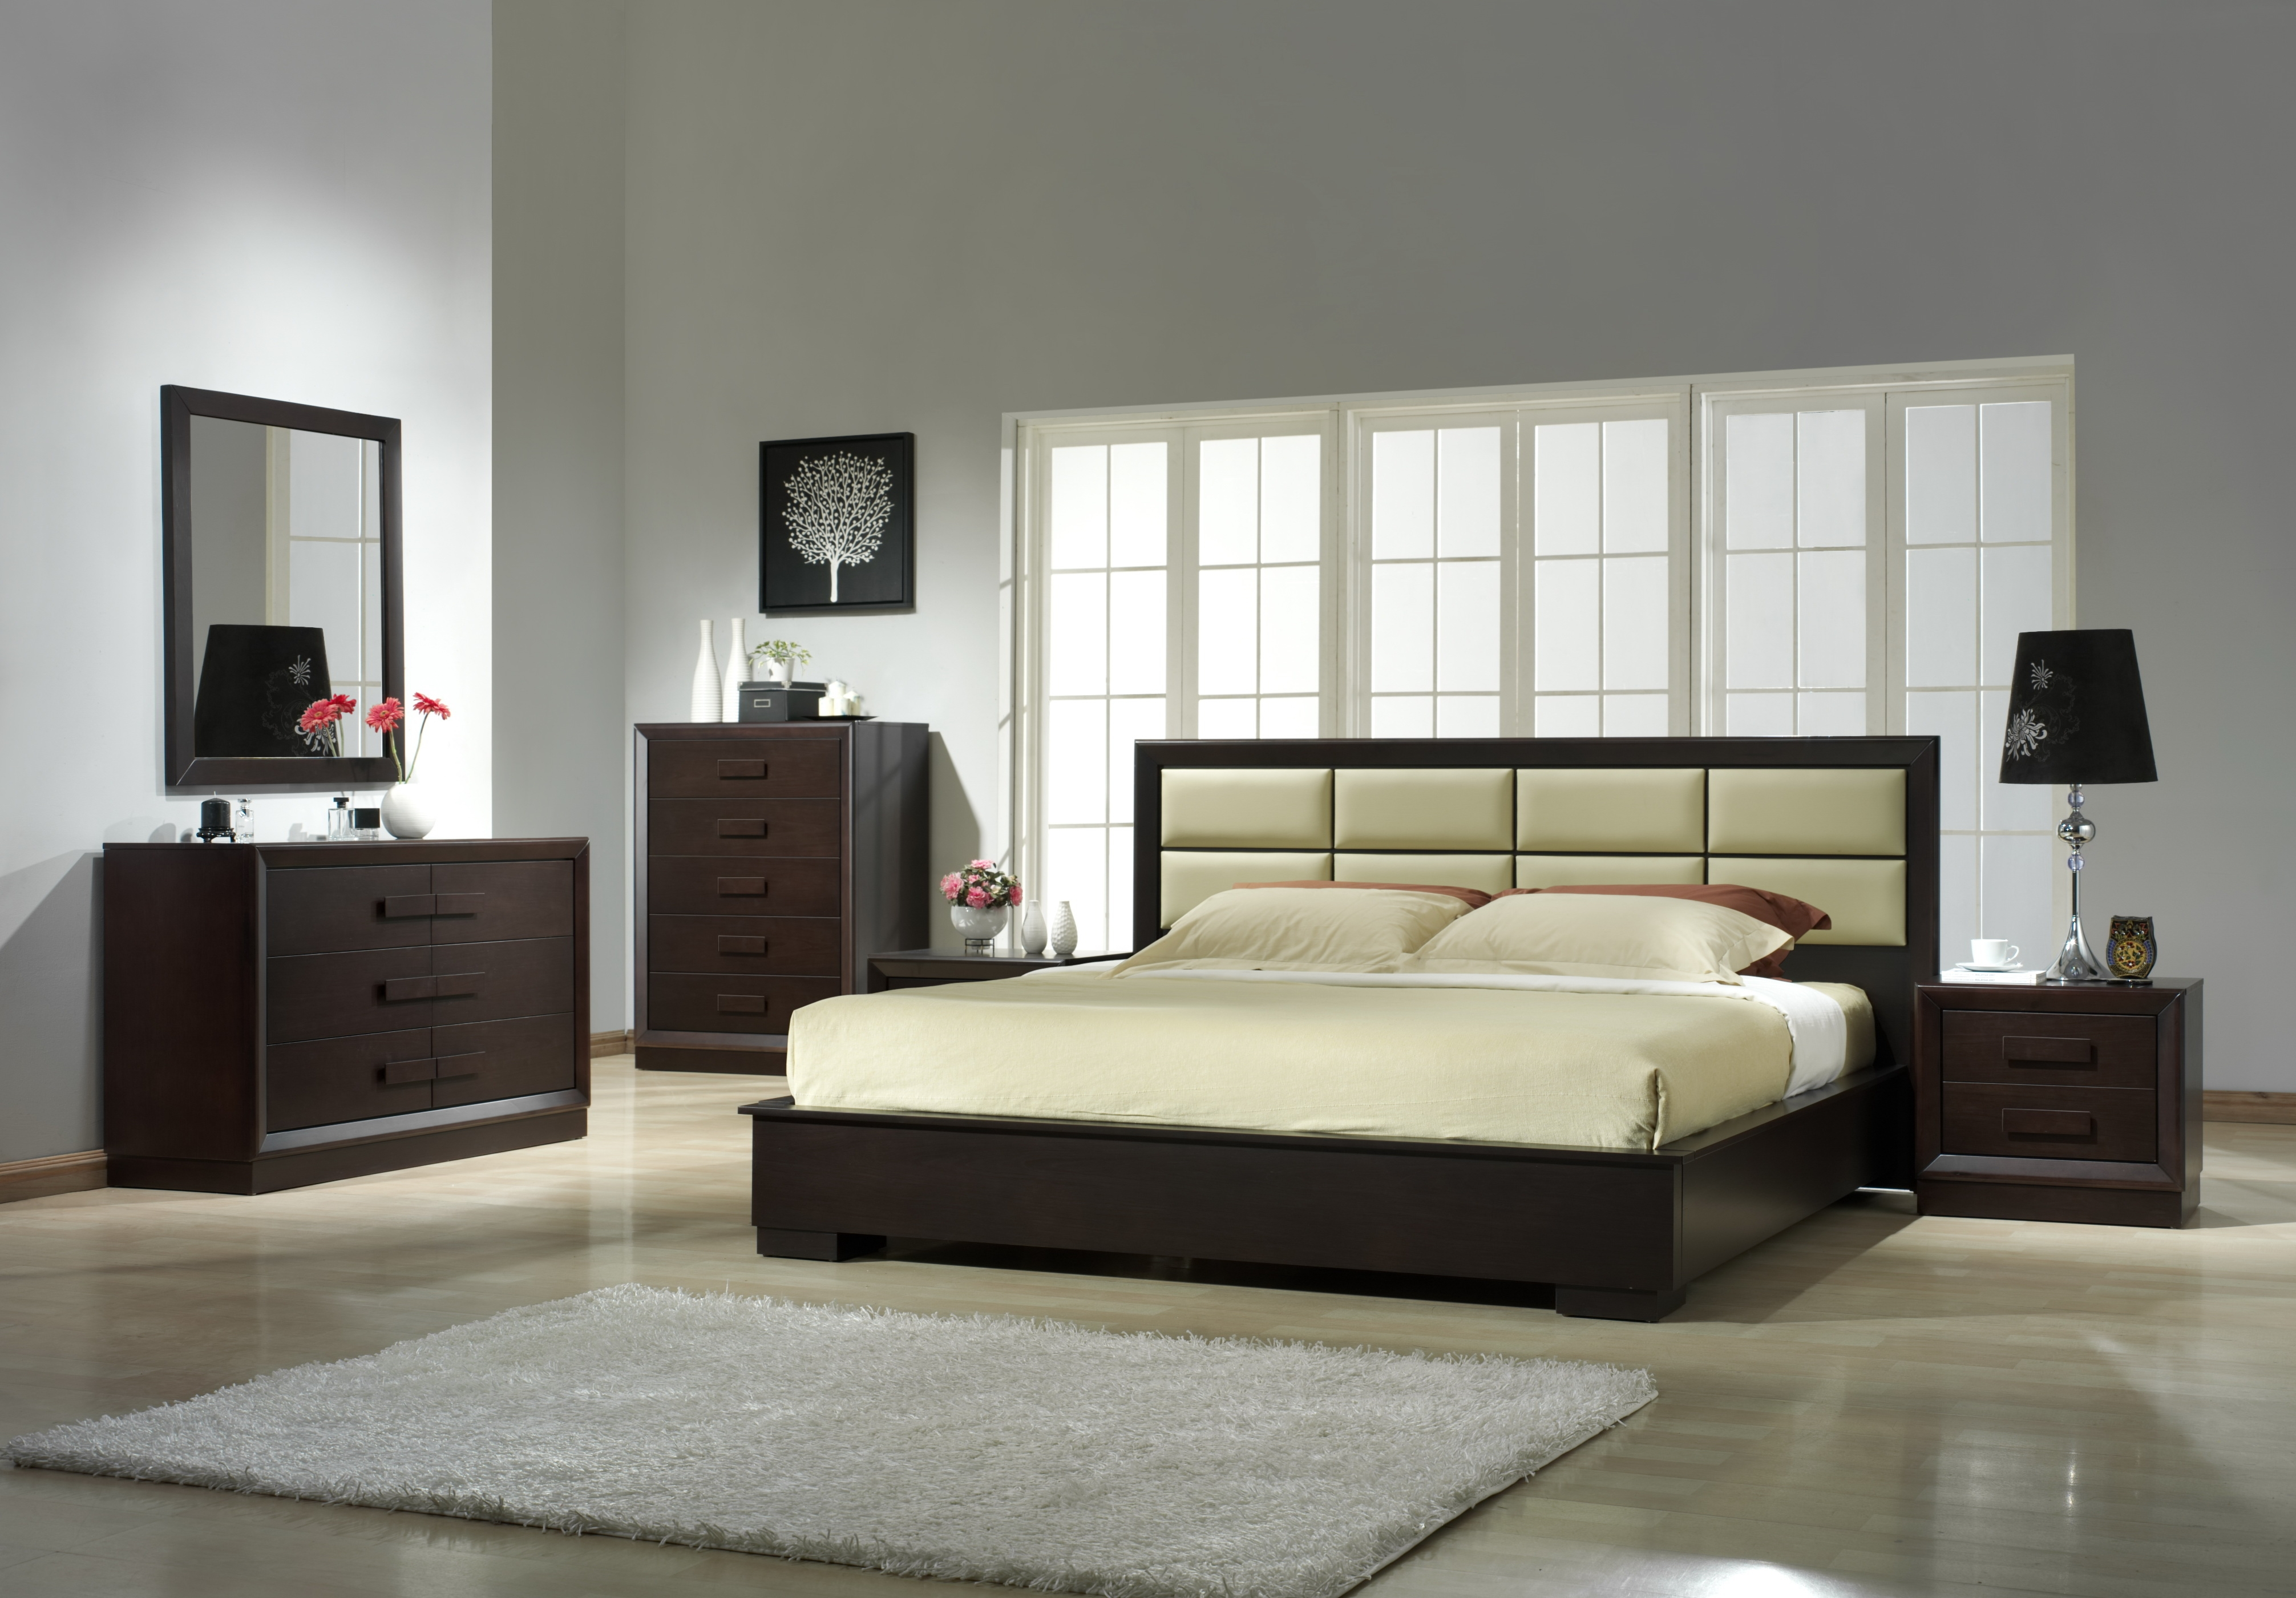 Unique Leather Platform And Headboard Bed Fort Wayne Indiana J M Boston